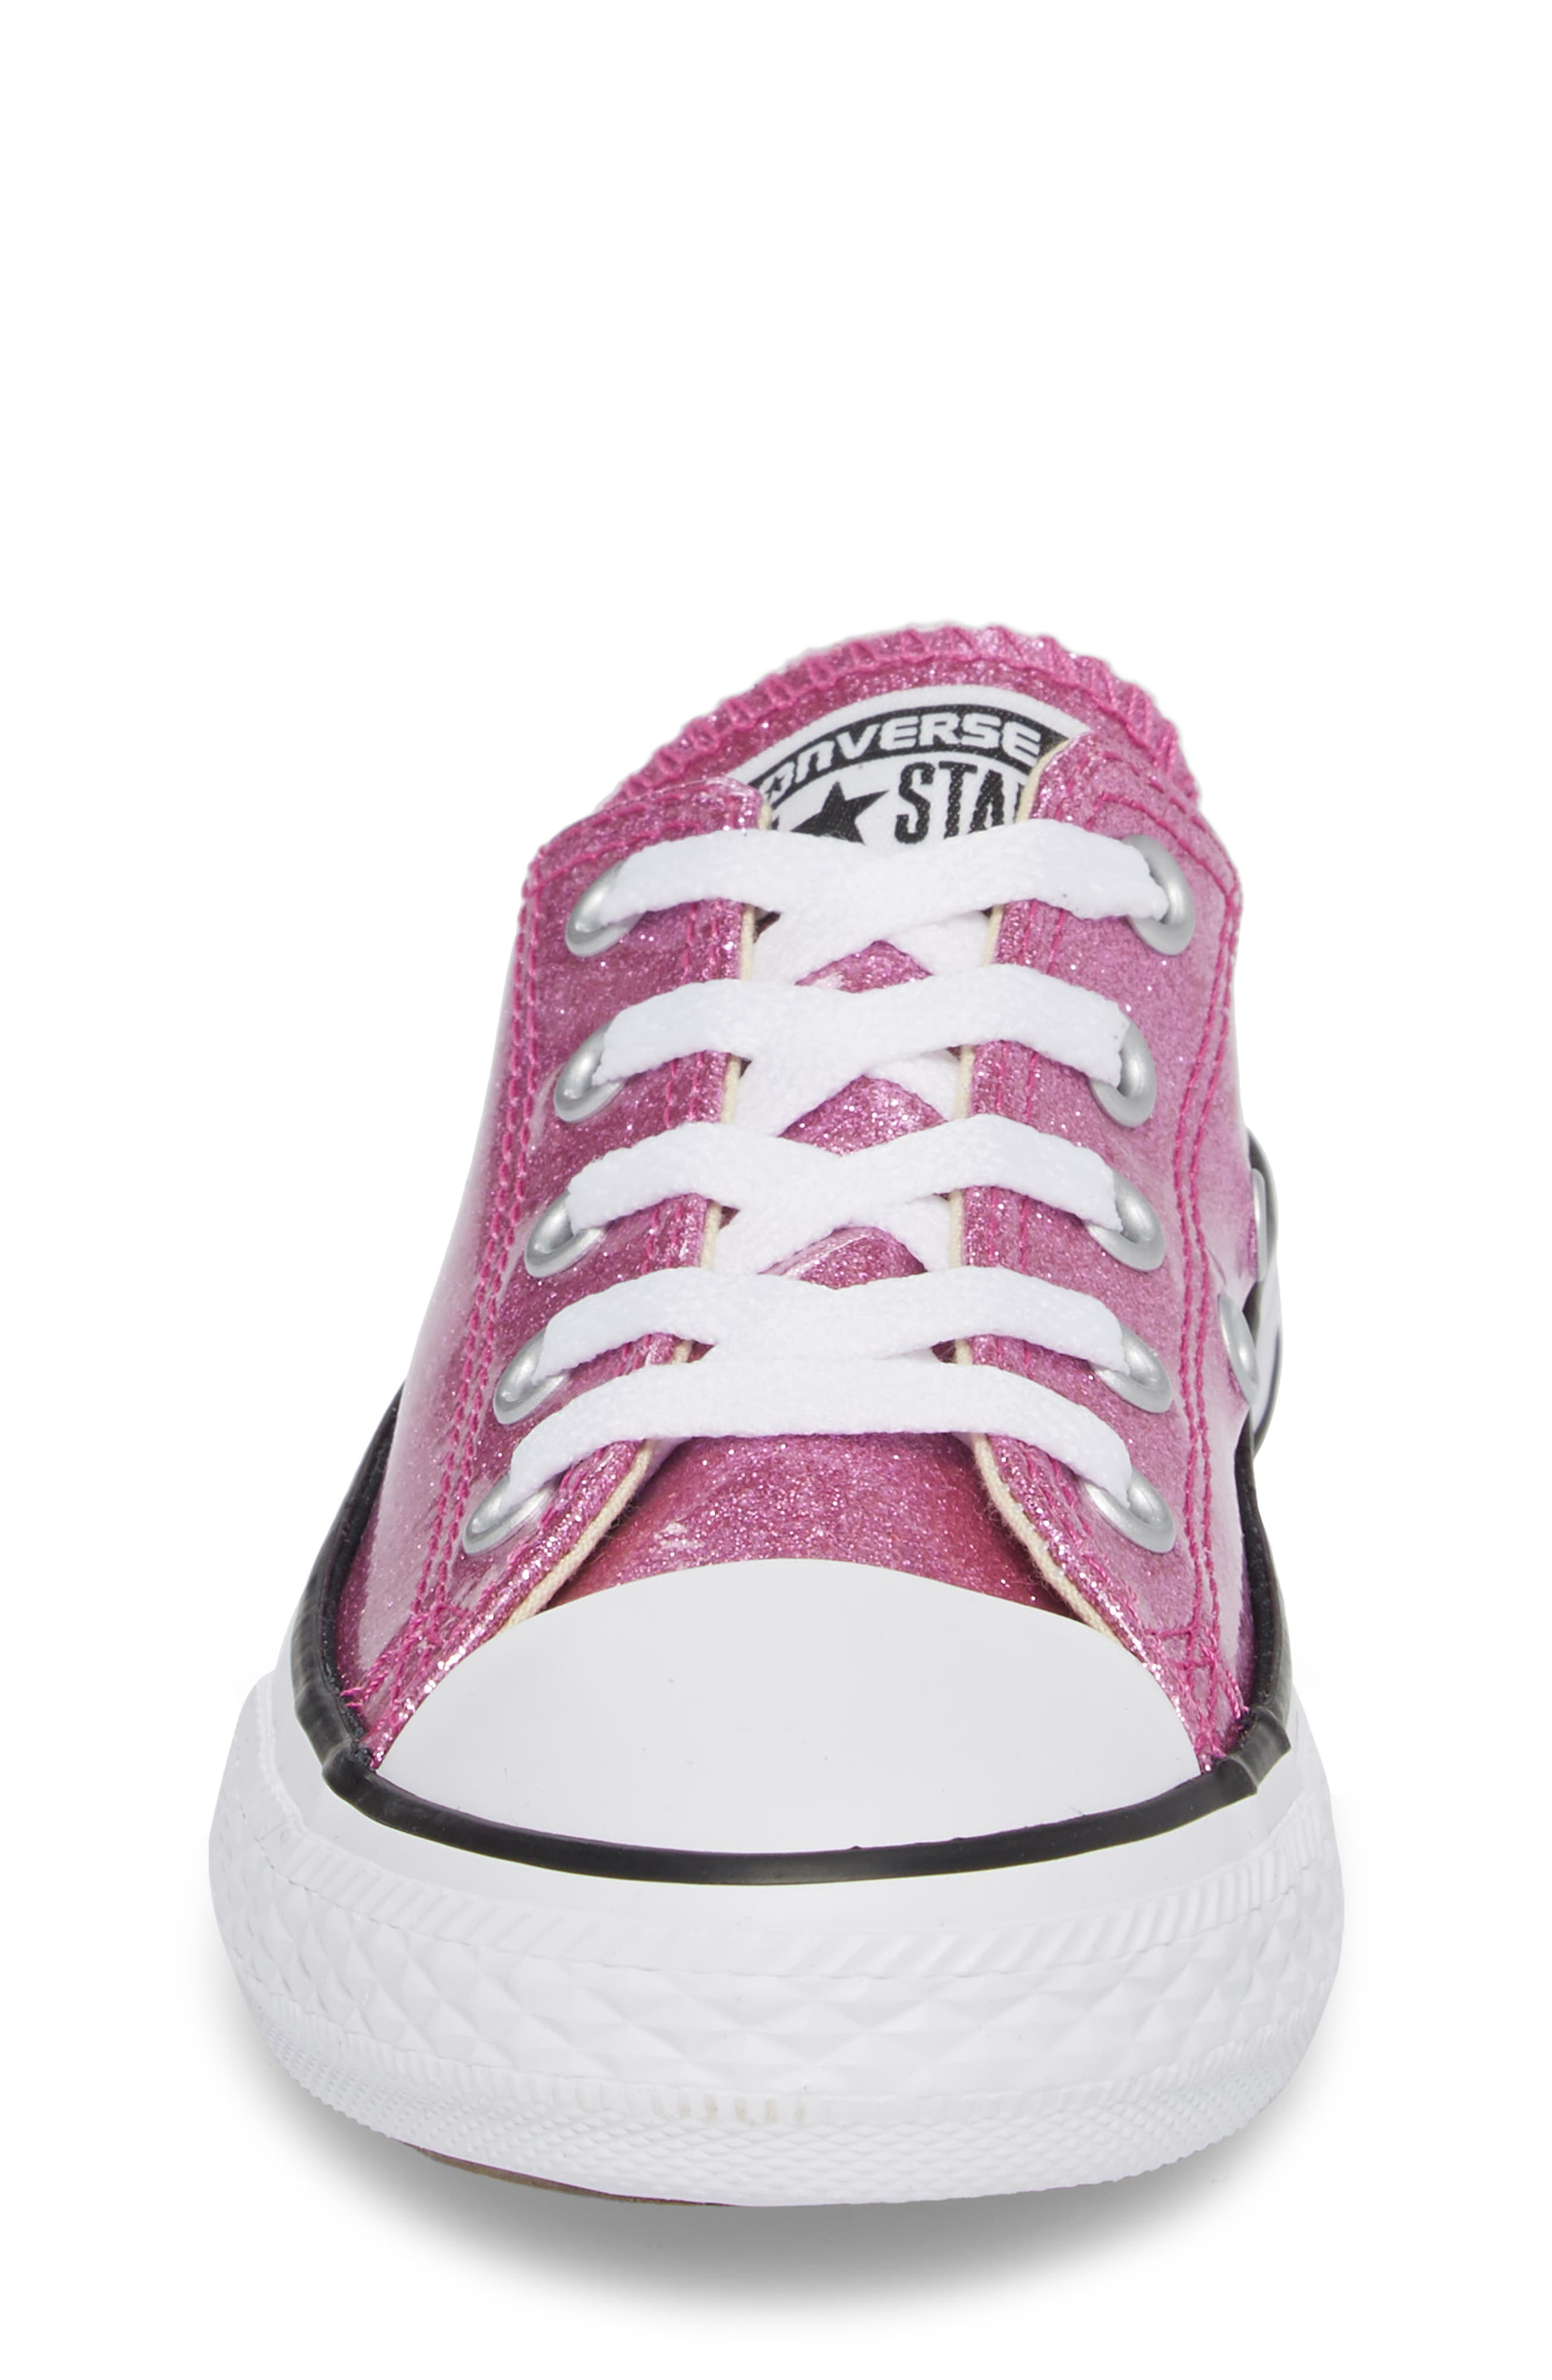 All Star<sup>®</sup> Seasonal Glitter OX Low Top Sneaker,                             Alternate thumbnail 4, color,                             Bright Violet